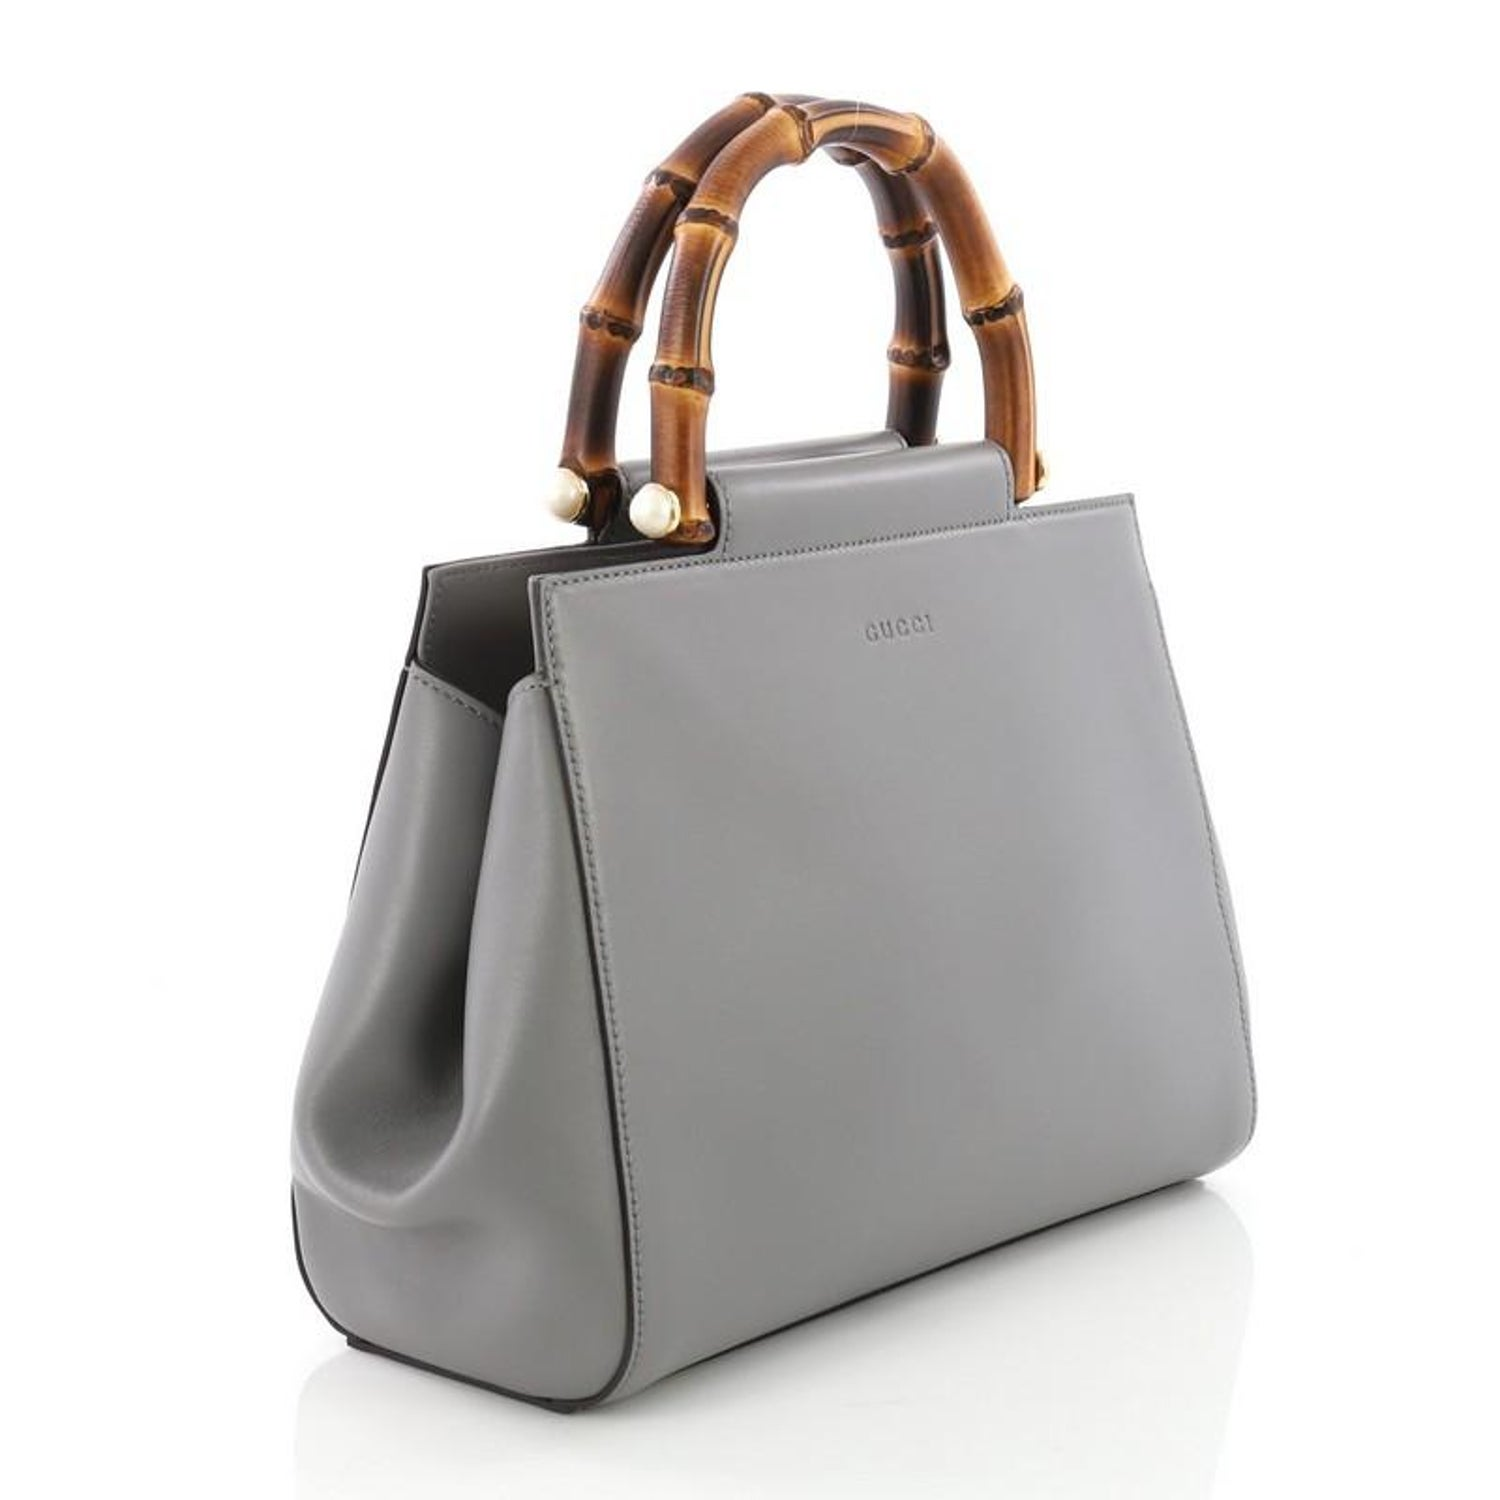 b7770b4873 Gucci Nymphaea Tote Leather Small